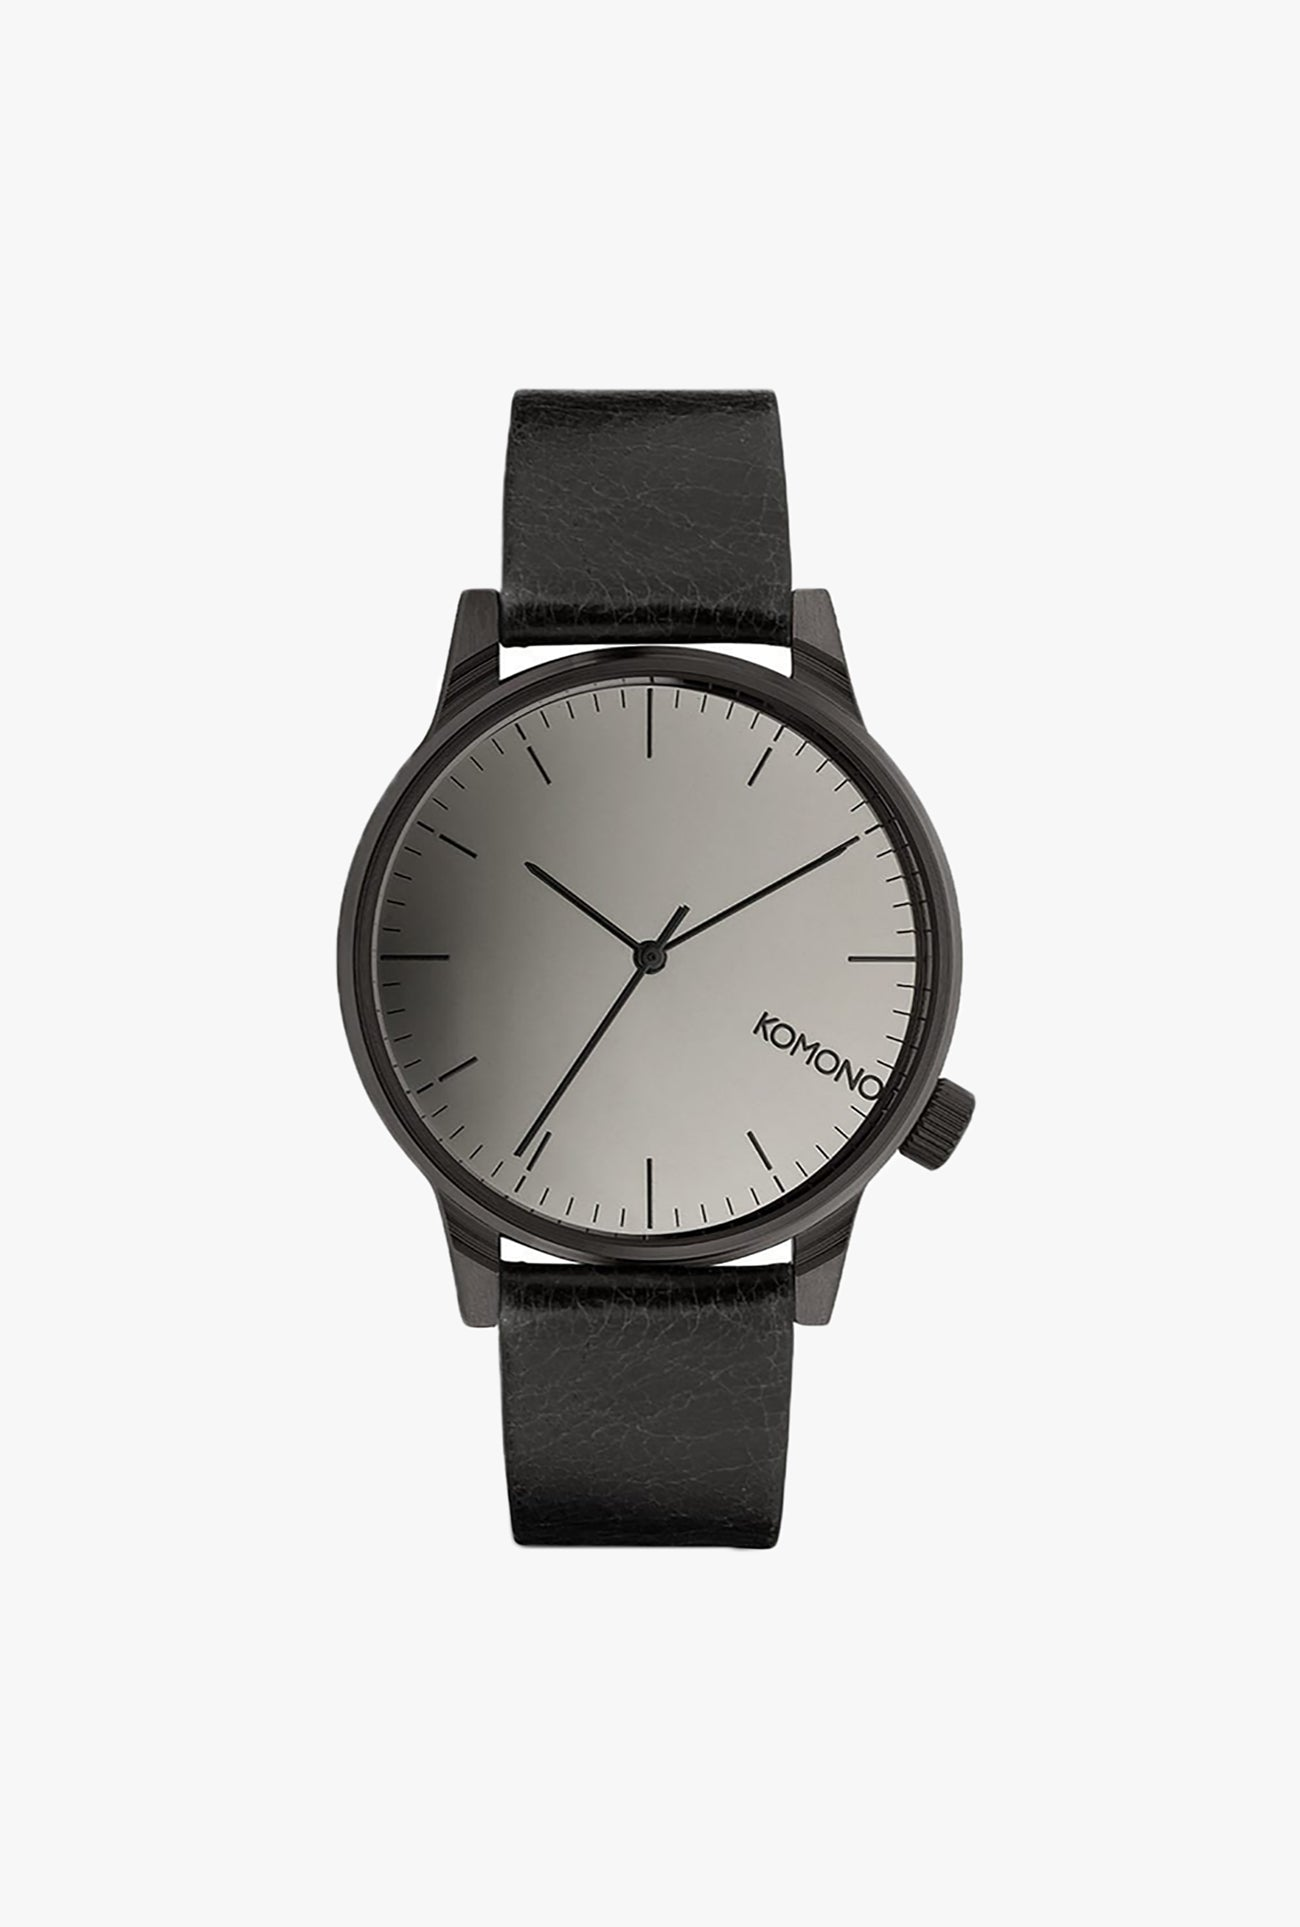 Winston Mirror Watch - Black